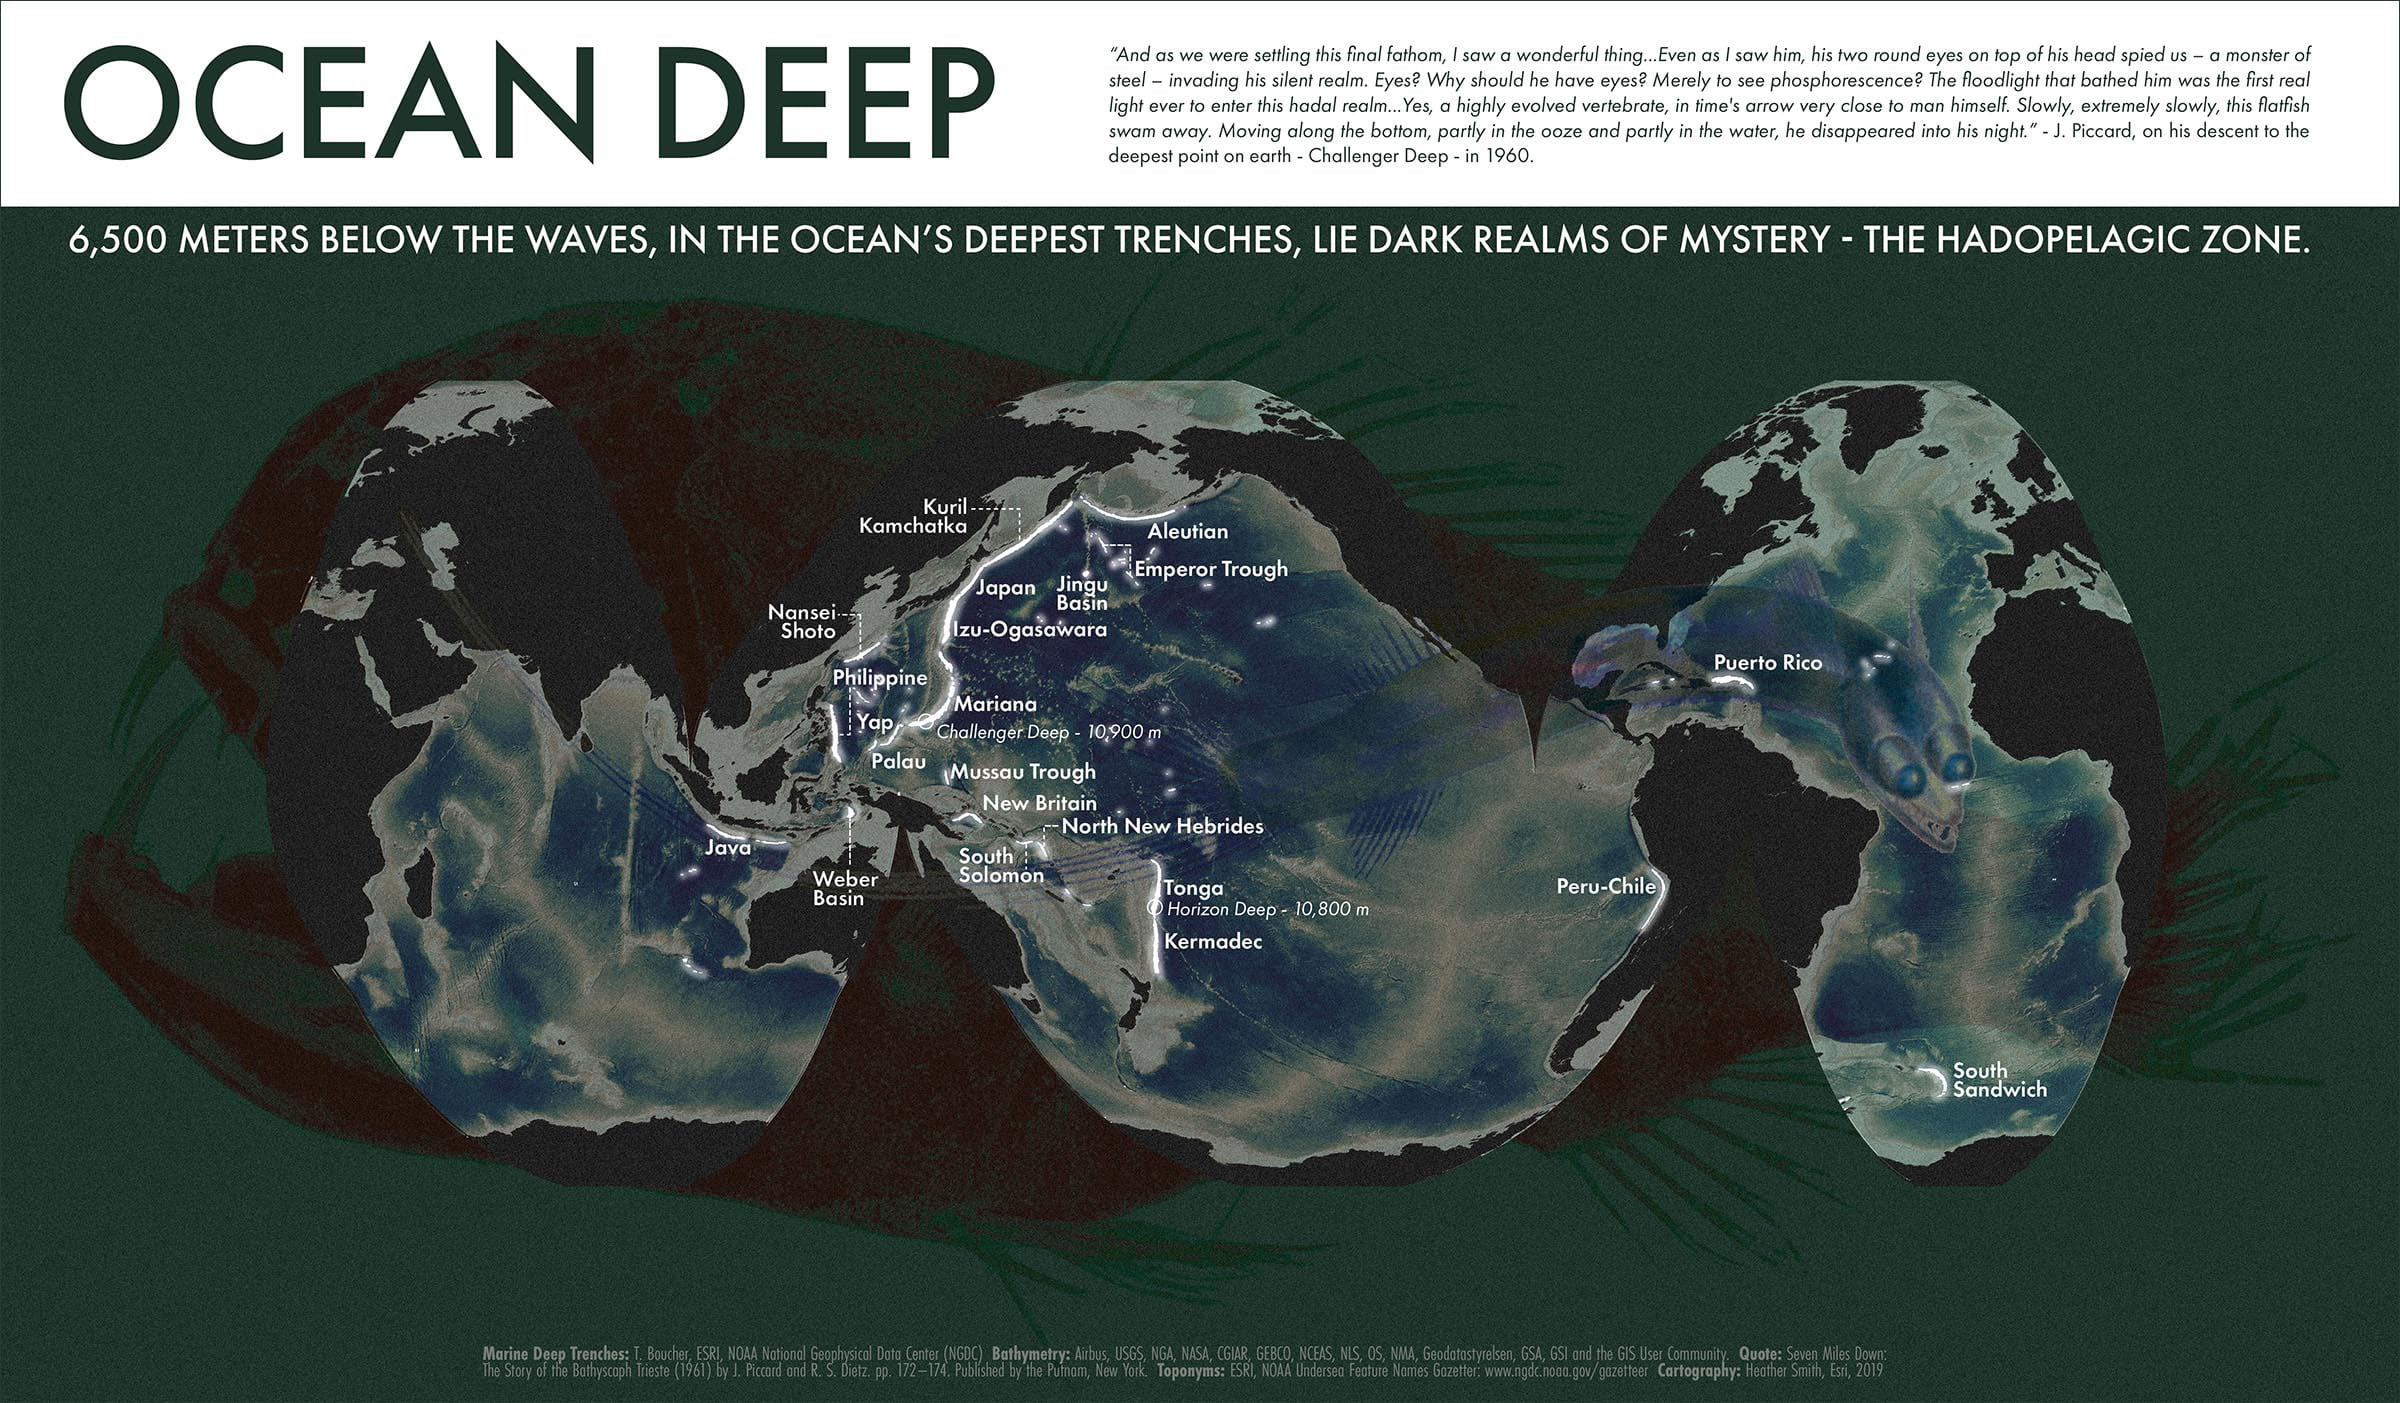 Sci-fi inspired map of ocean trenches